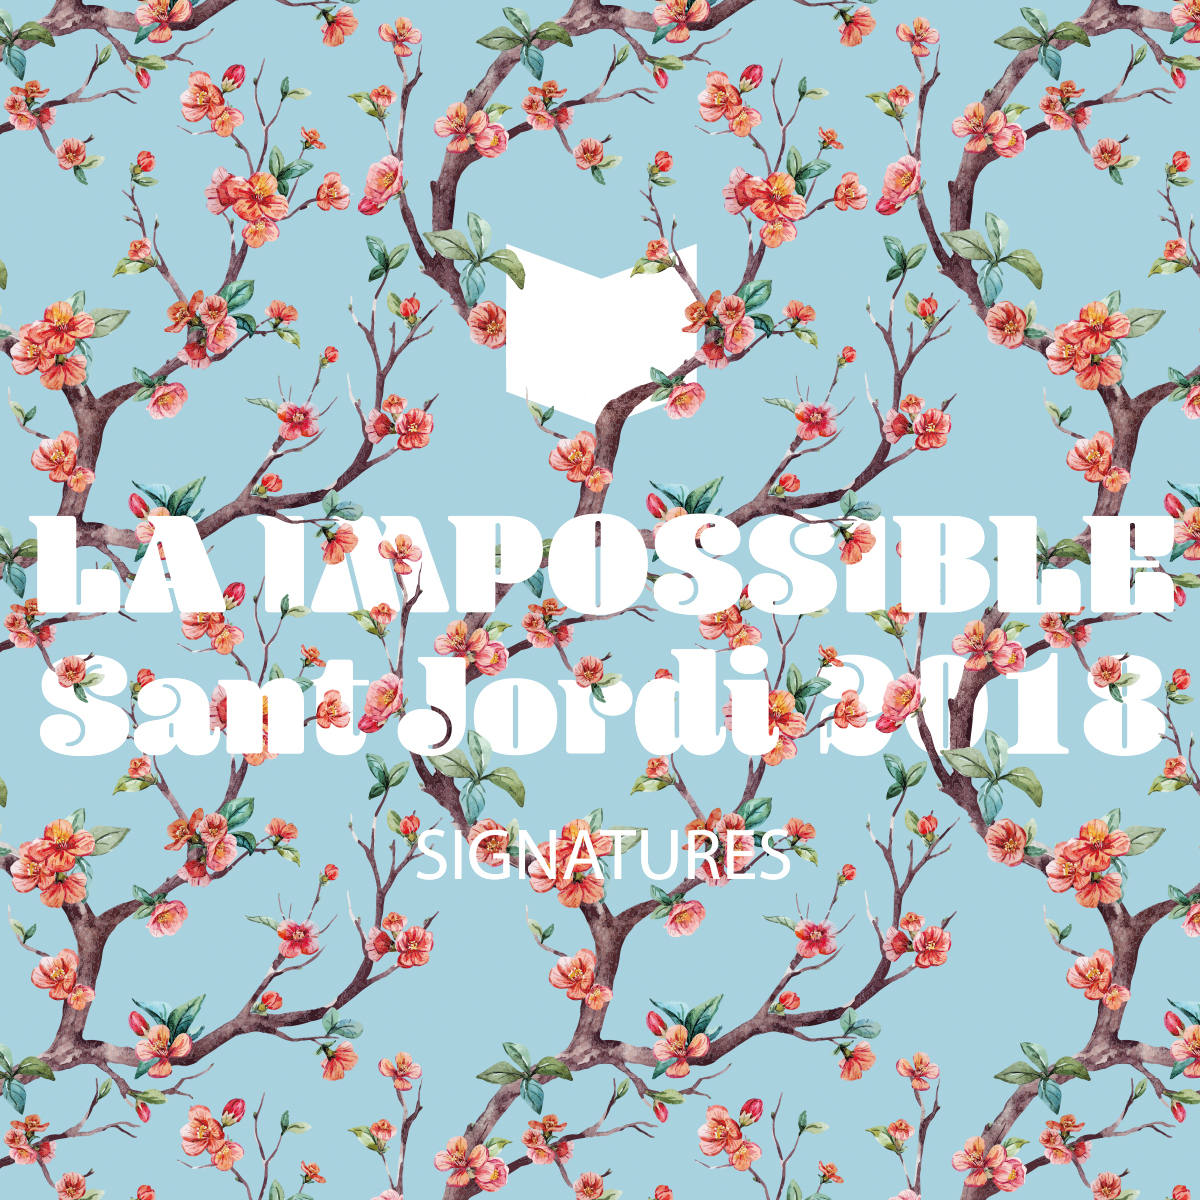 Signatures Sant Jordi LA IMPOSSIBLE |